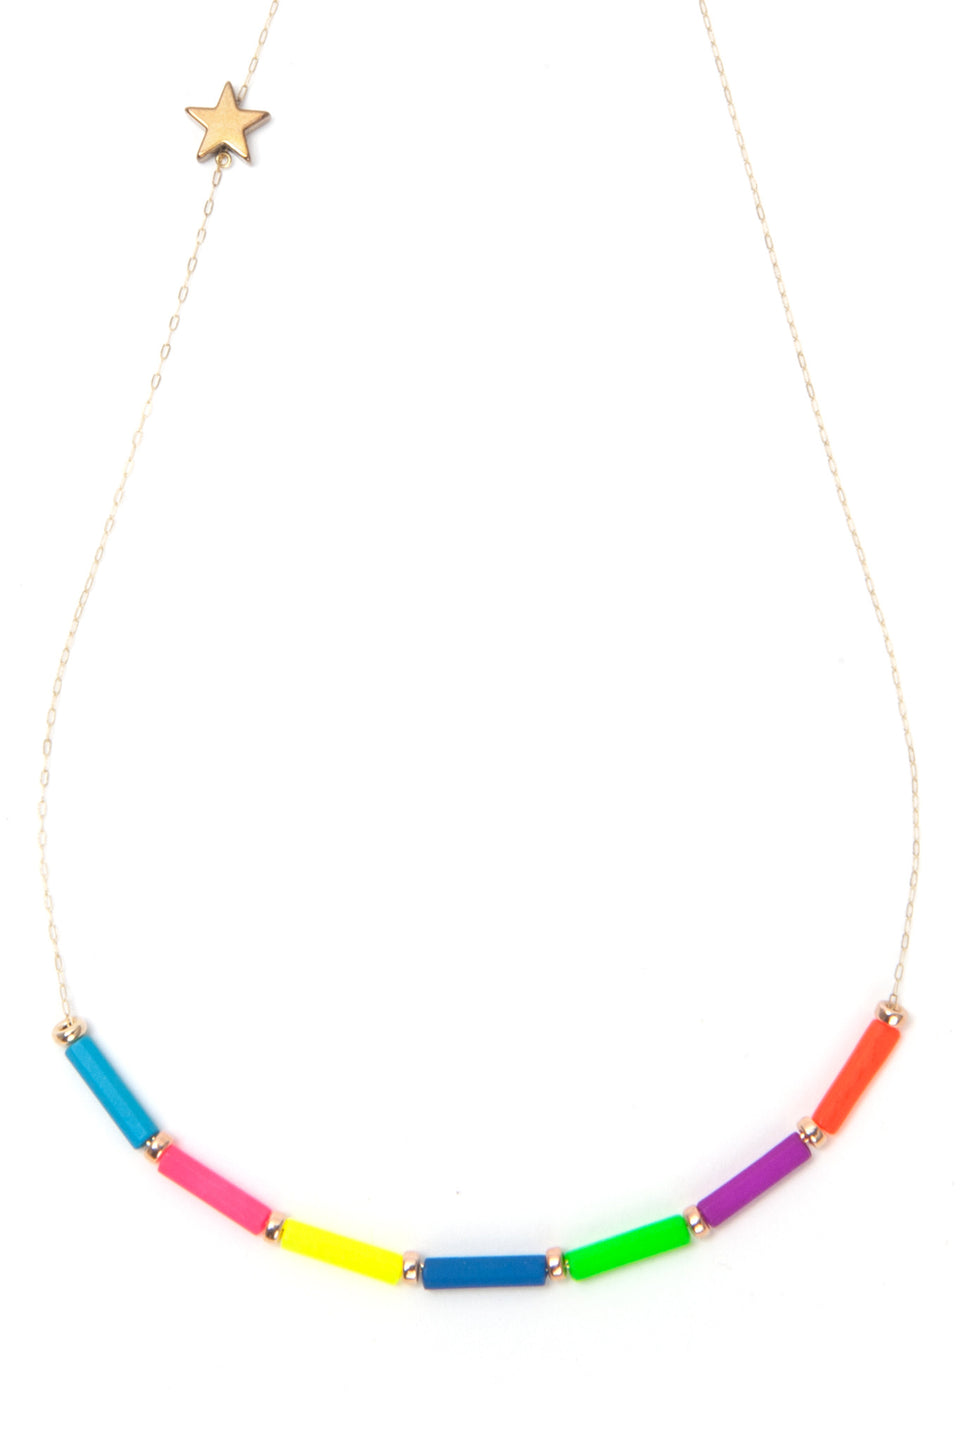 Rainbow Cosmic Chakras necklace